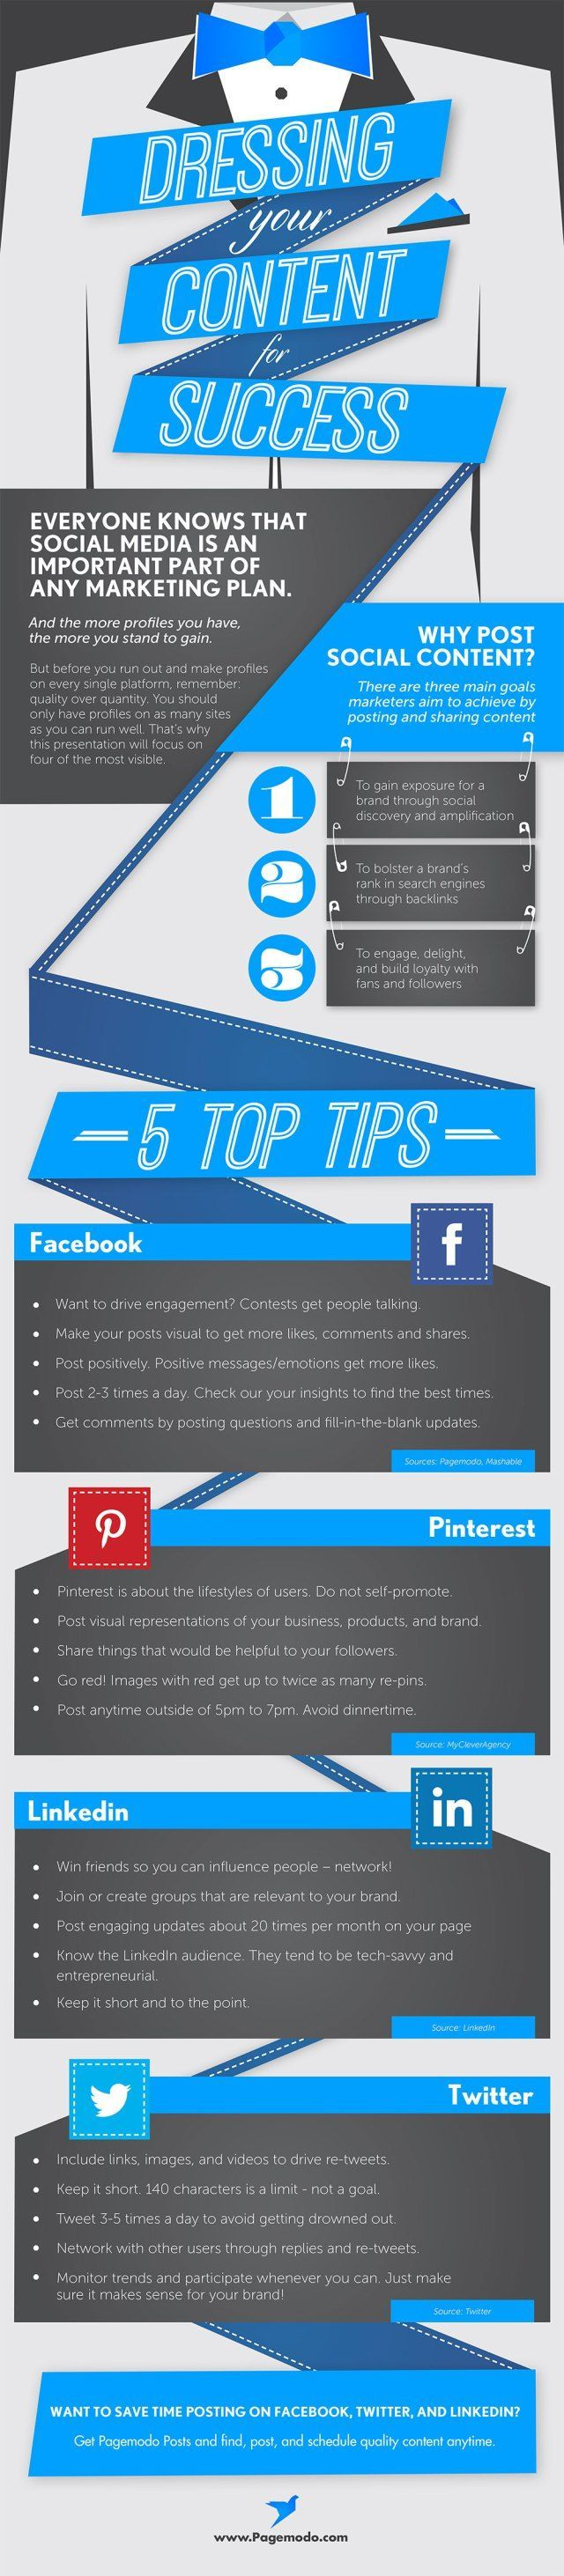 Here are the top five tips on how to dress your content up for success!